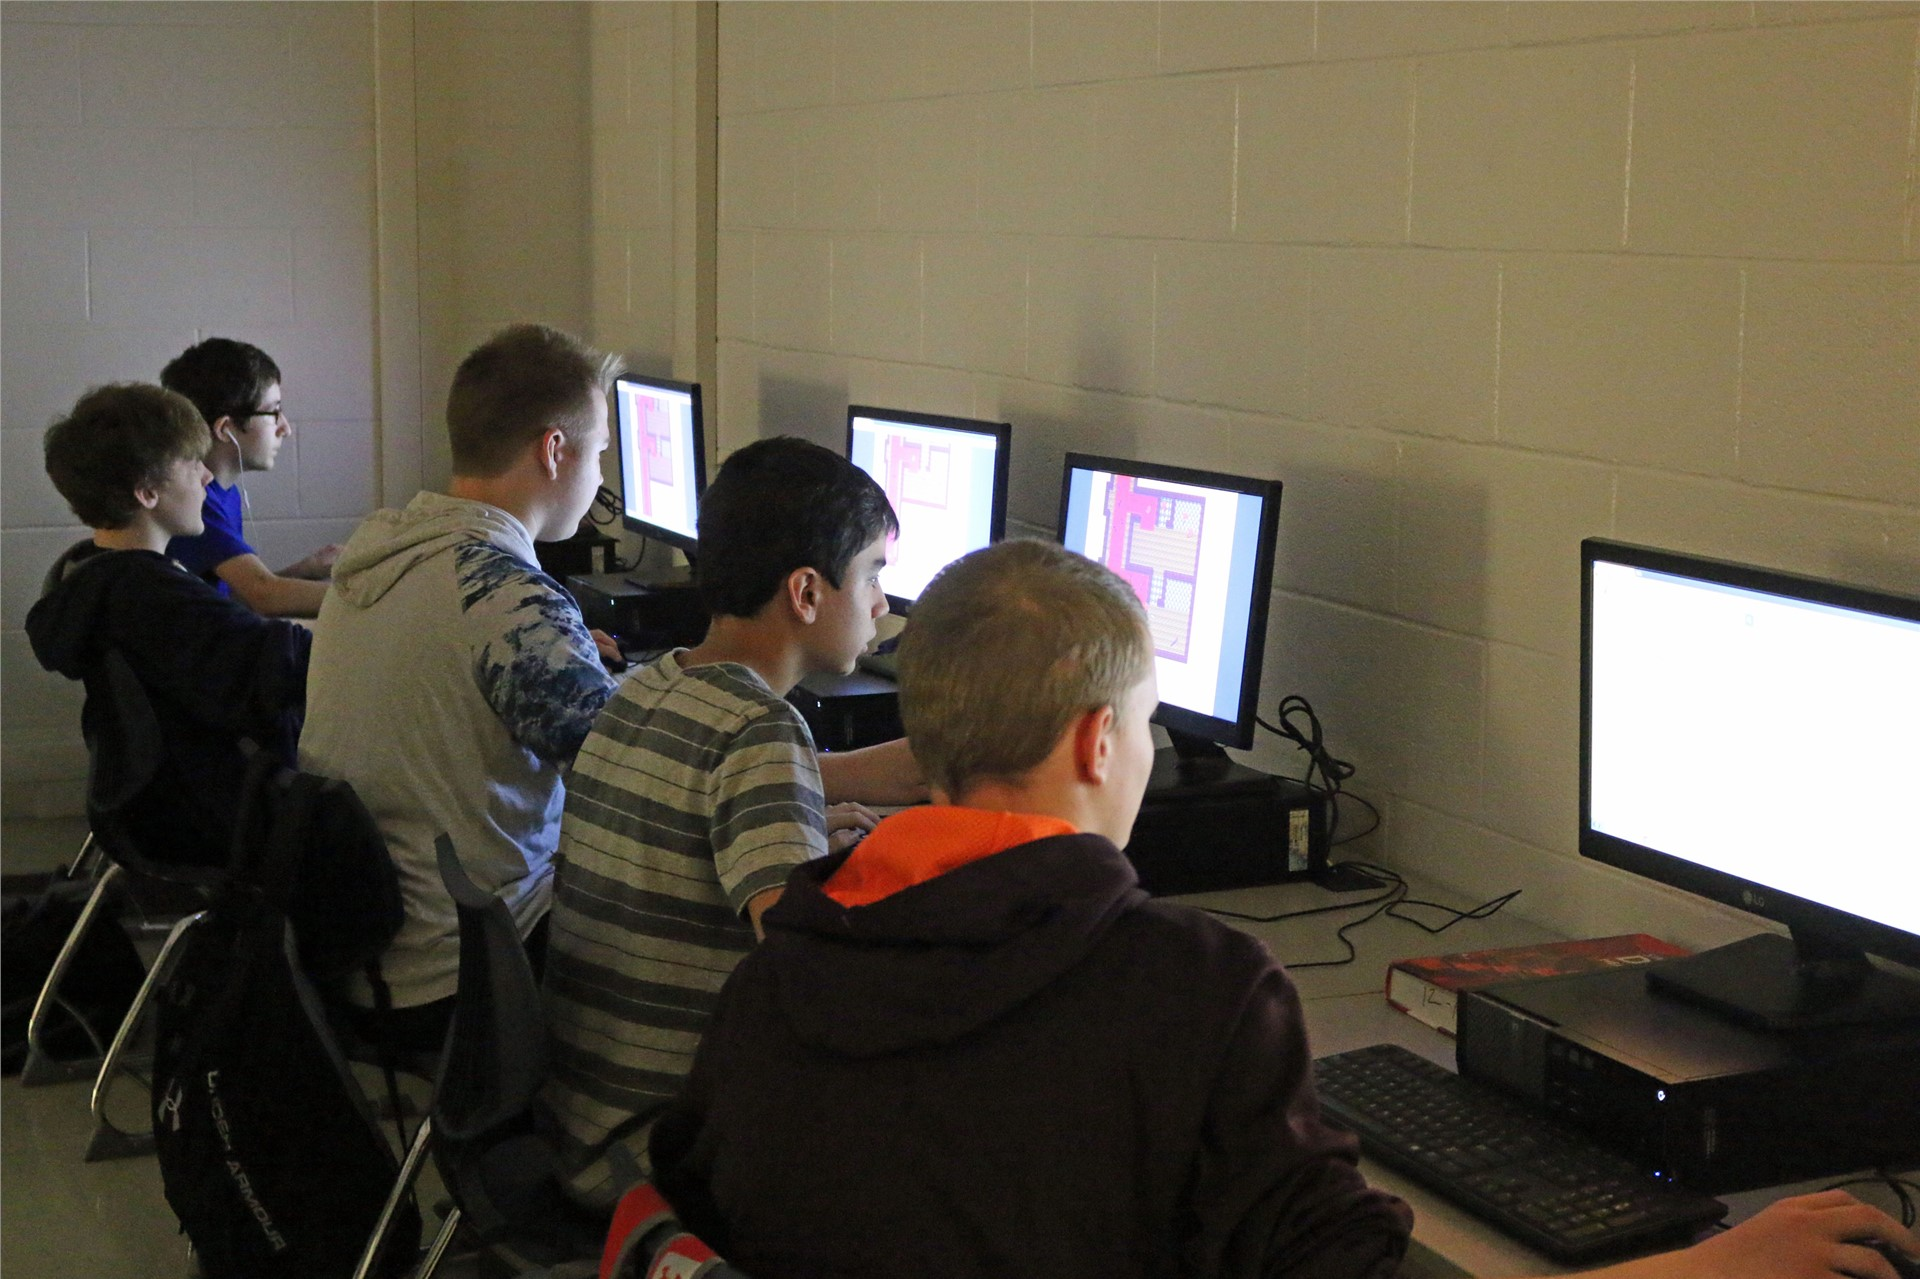 Students engaging in fun activity with computers.